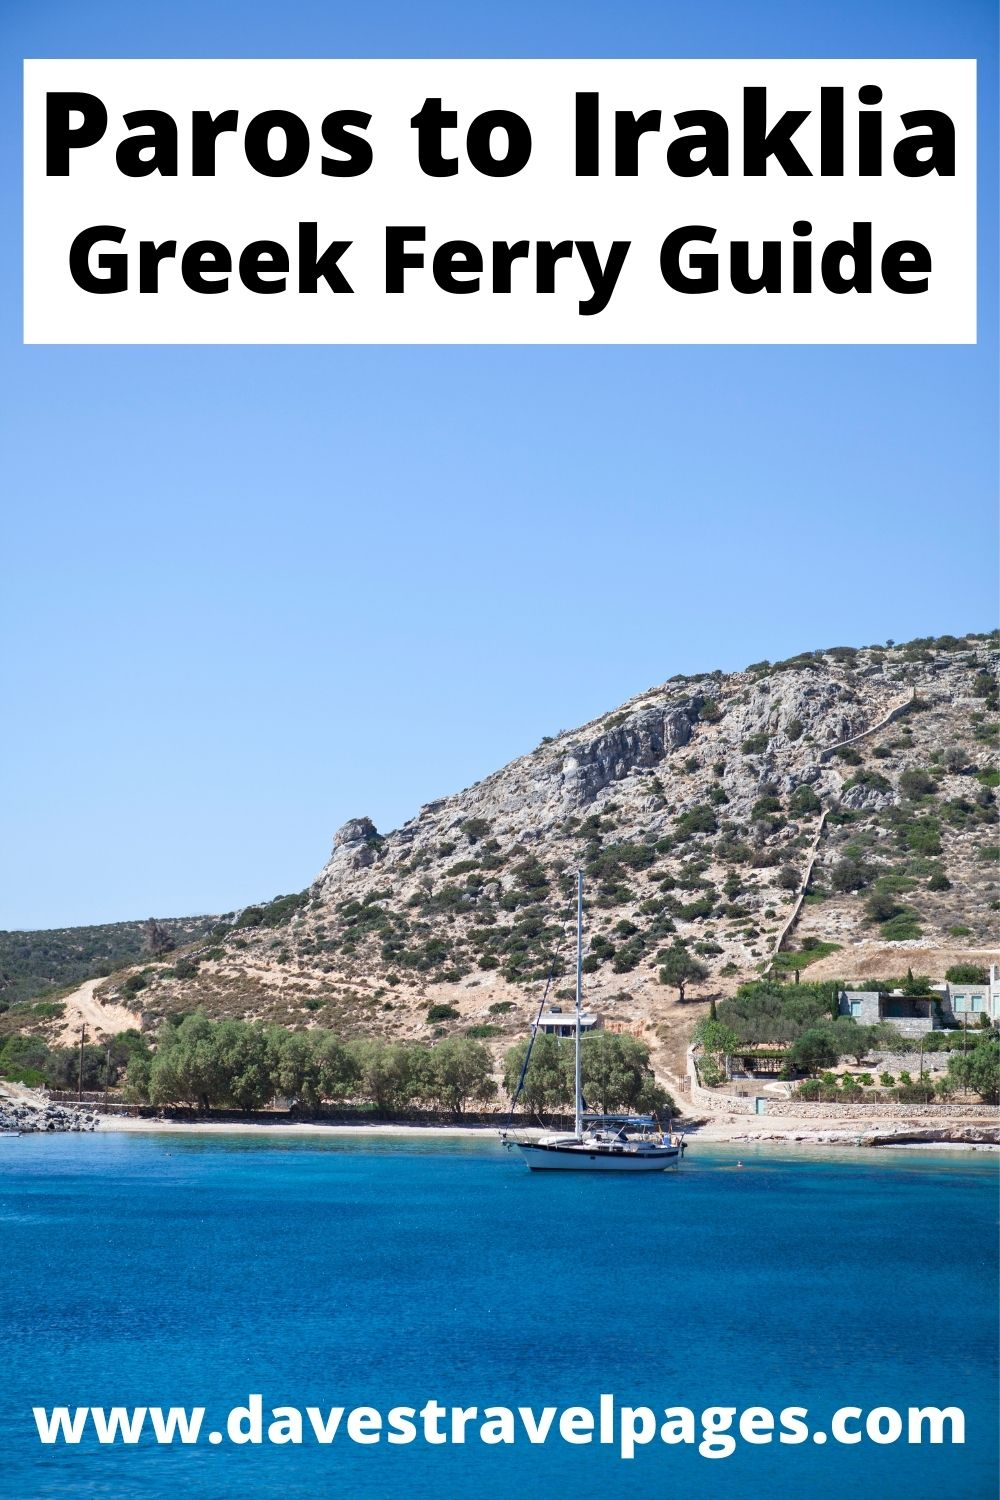 How to get from Paros to Iraklia in Greece by ferry